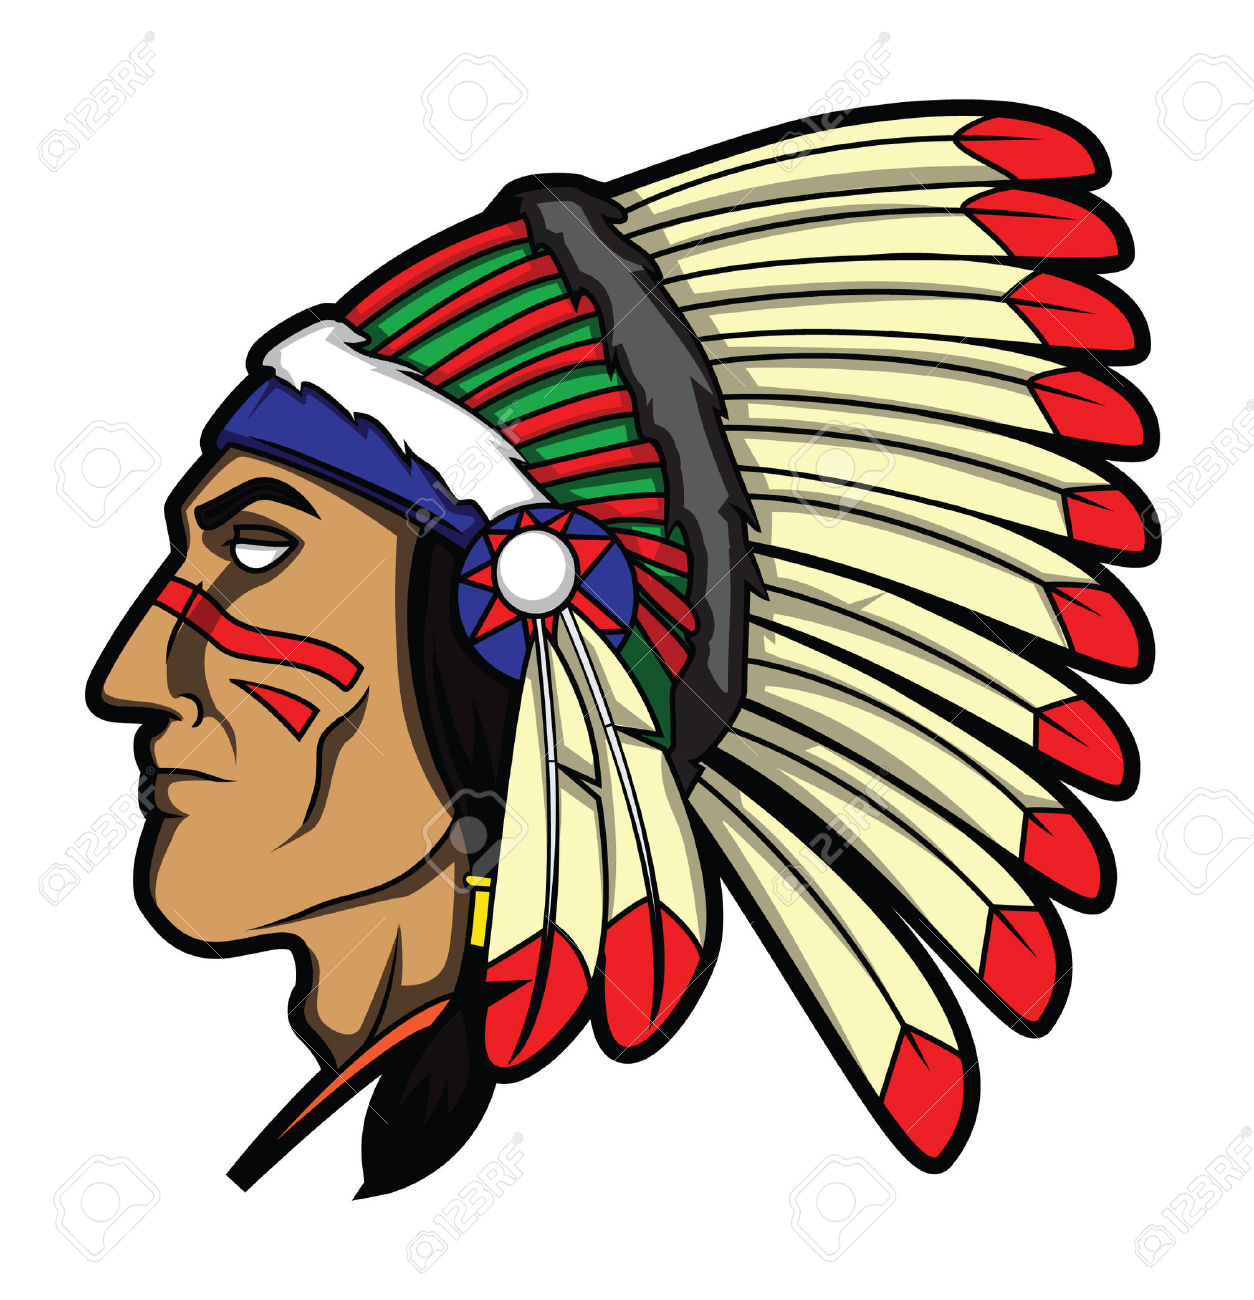 hight resolution of 1254x1300 chief clipart cherokee indian